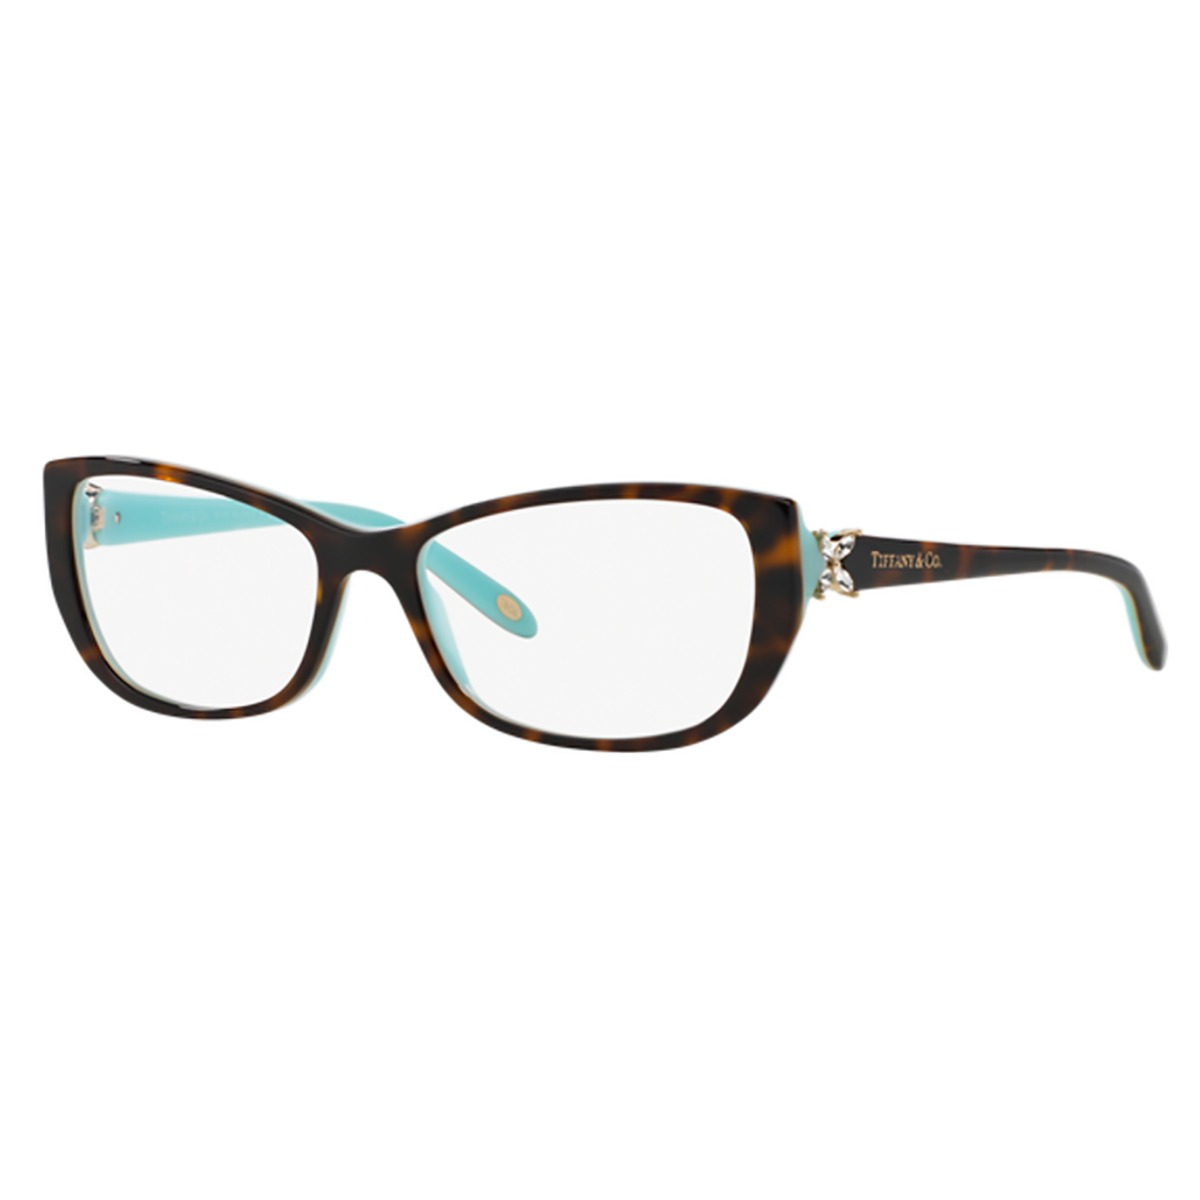 7956d8f0e2f63 Óculos De Grau Tiffany   Co. Tf2044-b 8134 - R  1.298